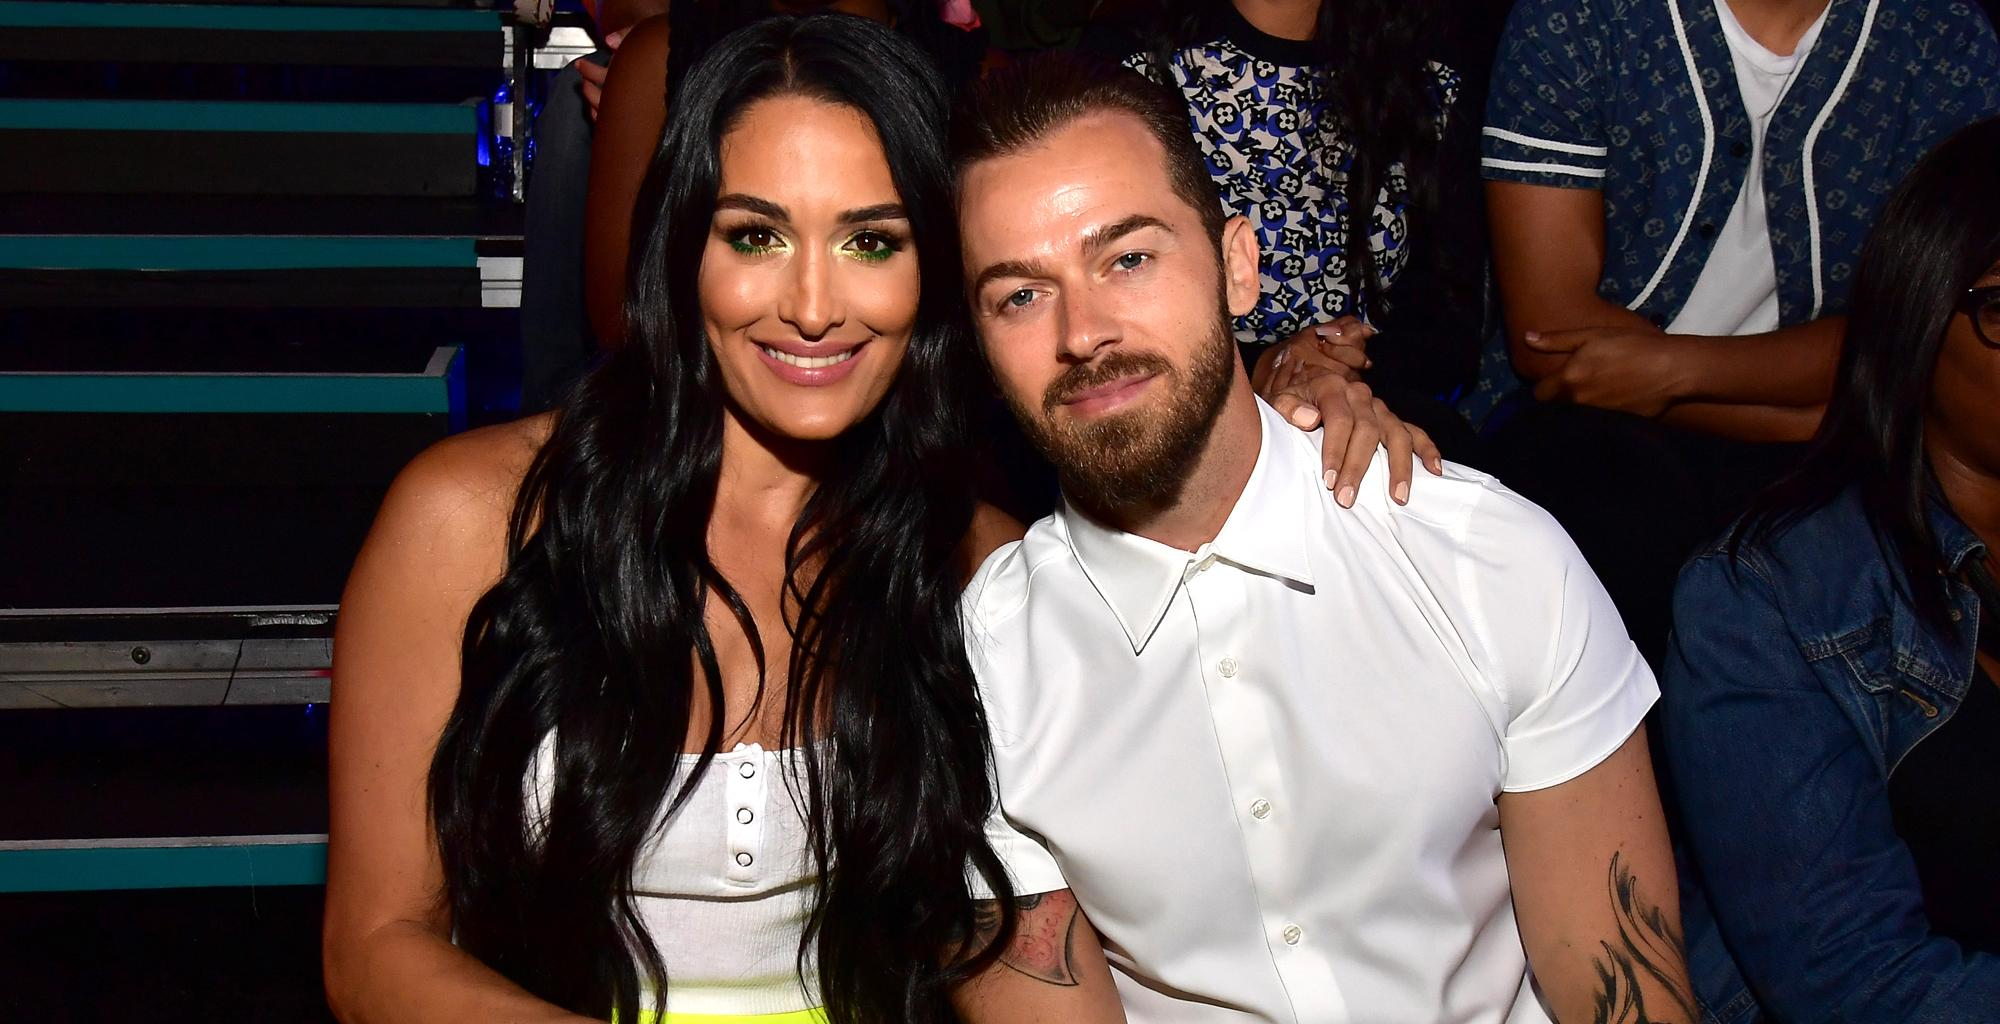 Nikki Bella Returns To Social Media 2 Weeks After Giving Birth - Tells Fans She's 'Never Cried' So Many Happy Tears Before Becoming A Mom!